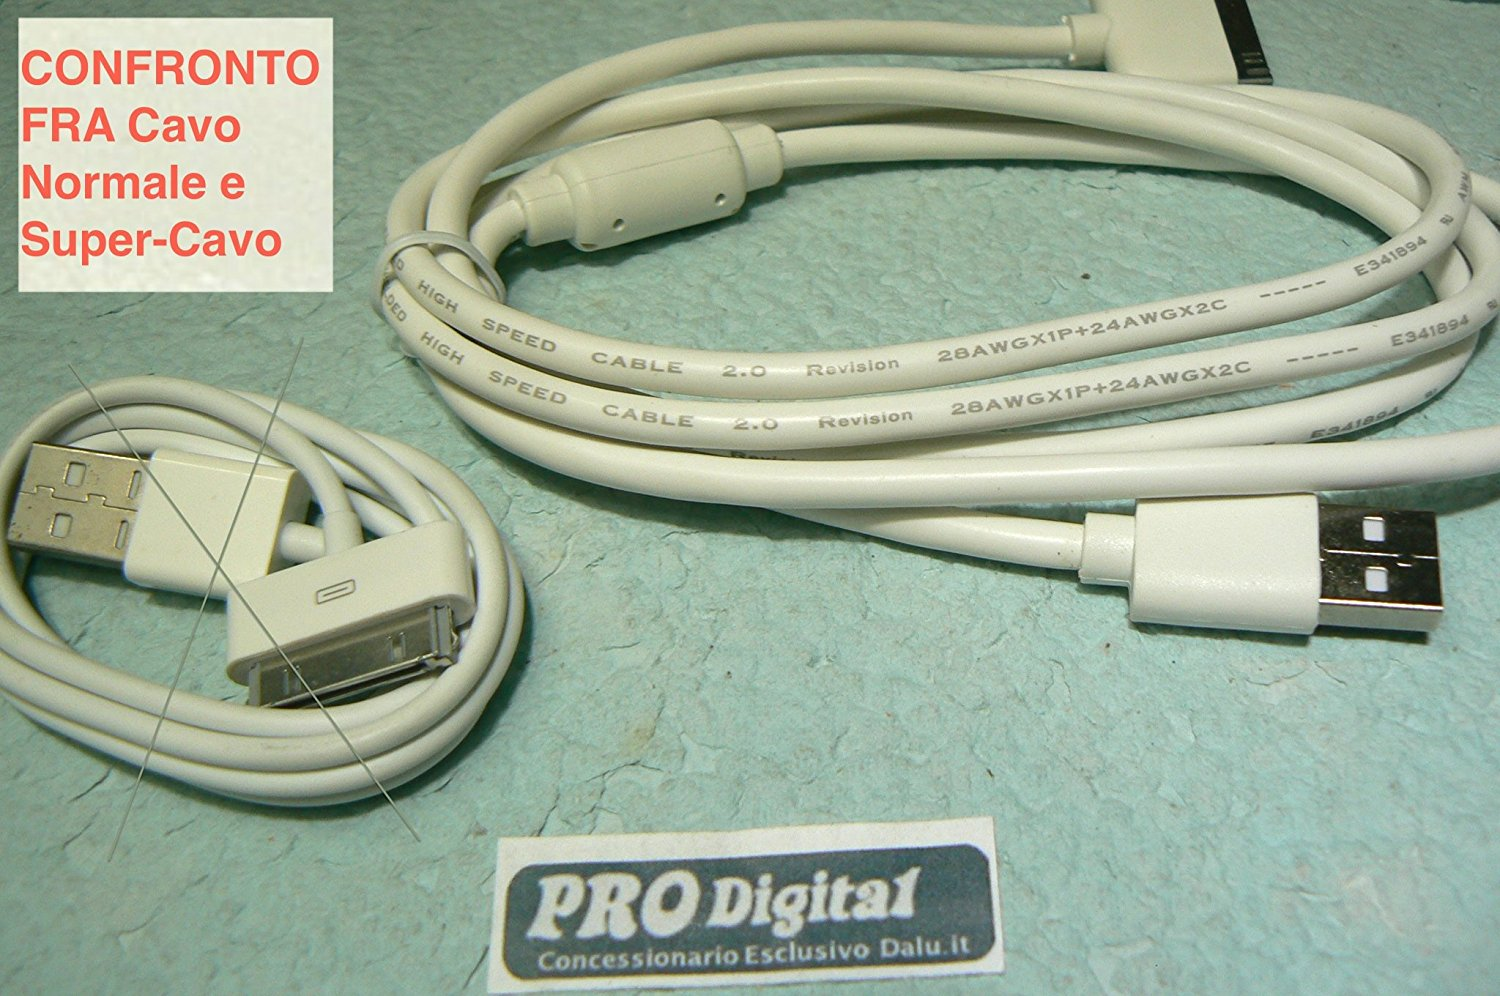 ProDigital USB CABLE IPHONE 4 E IPAD